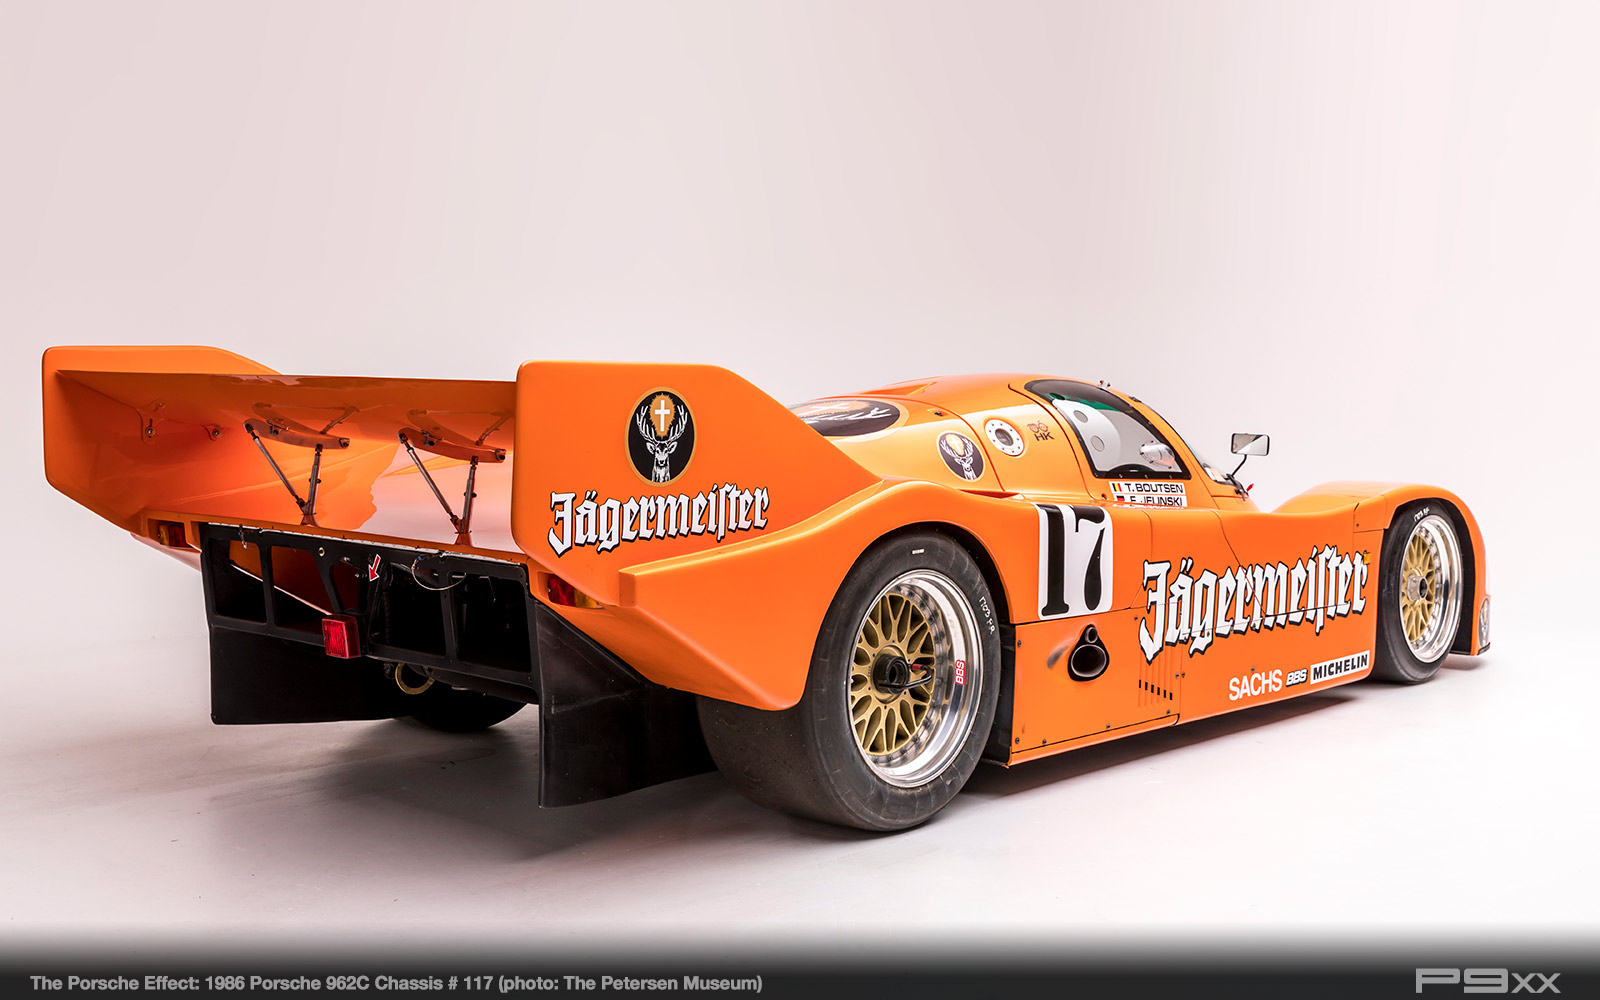 1986-Jagermeister-962C-Chassis-117-Petersen-Automotive-Museum-The-Porsche-Effect-439